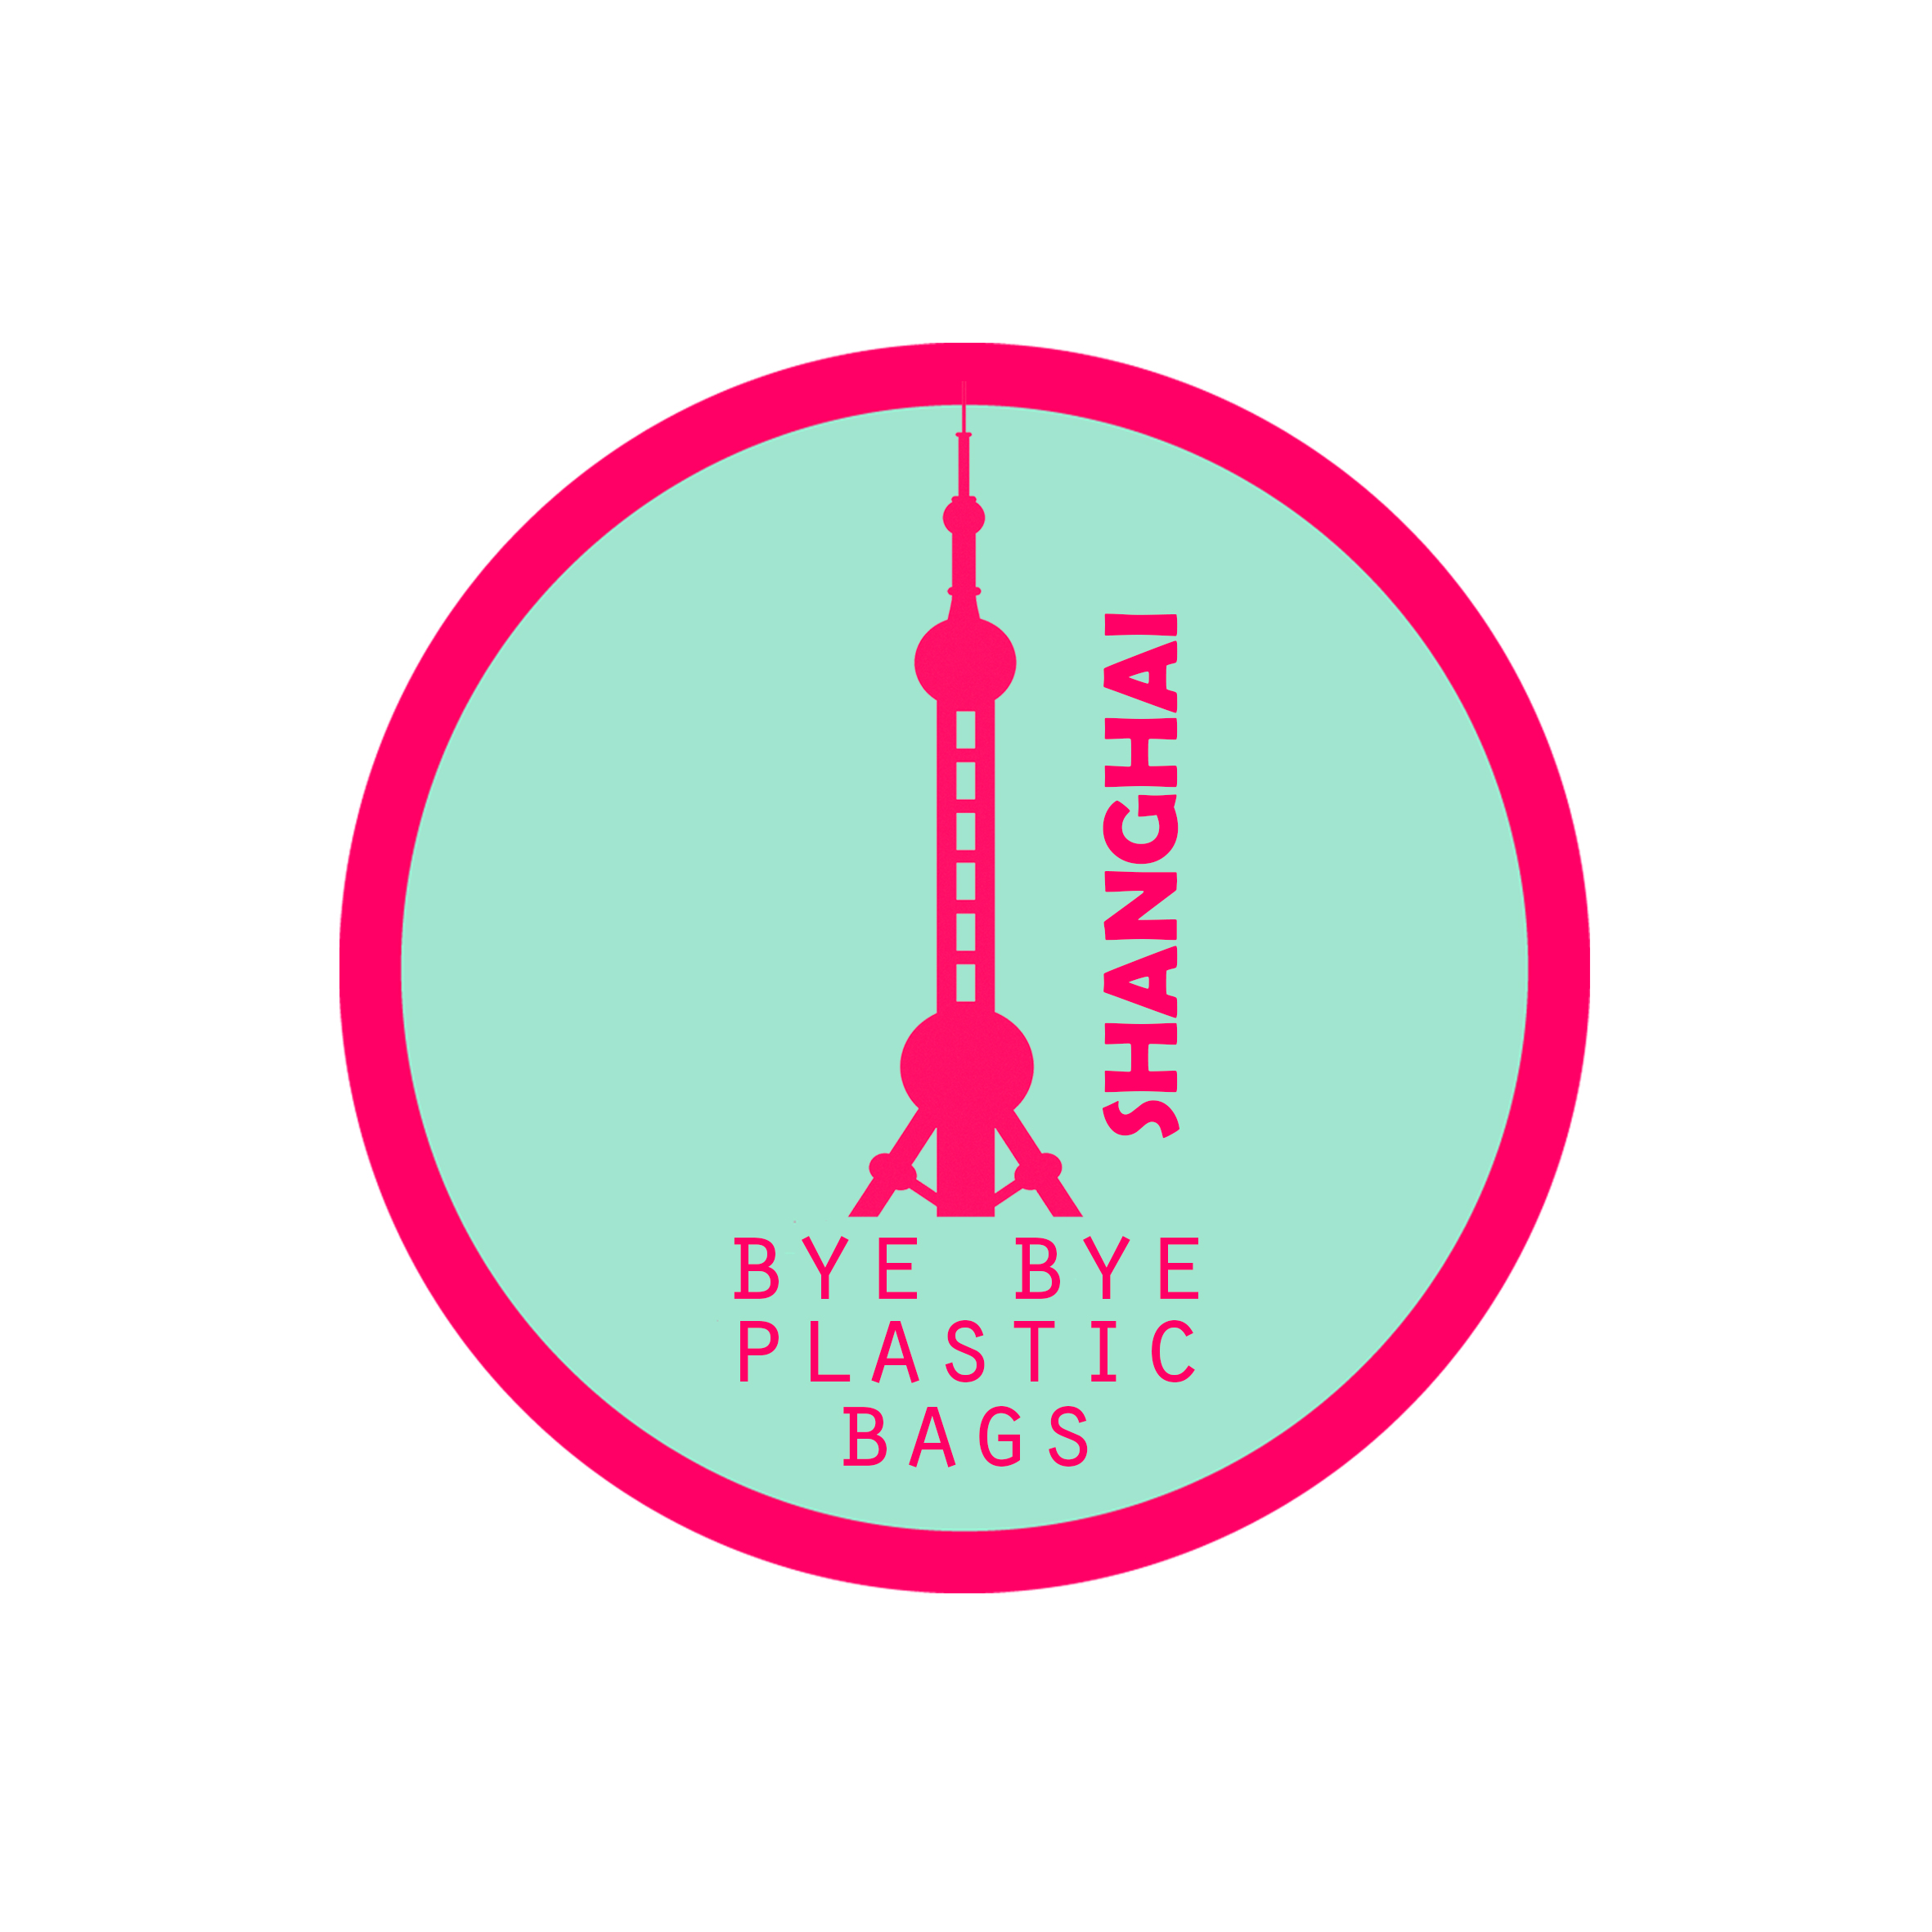 The BBPB Shanghai logo designed by Concordia students.